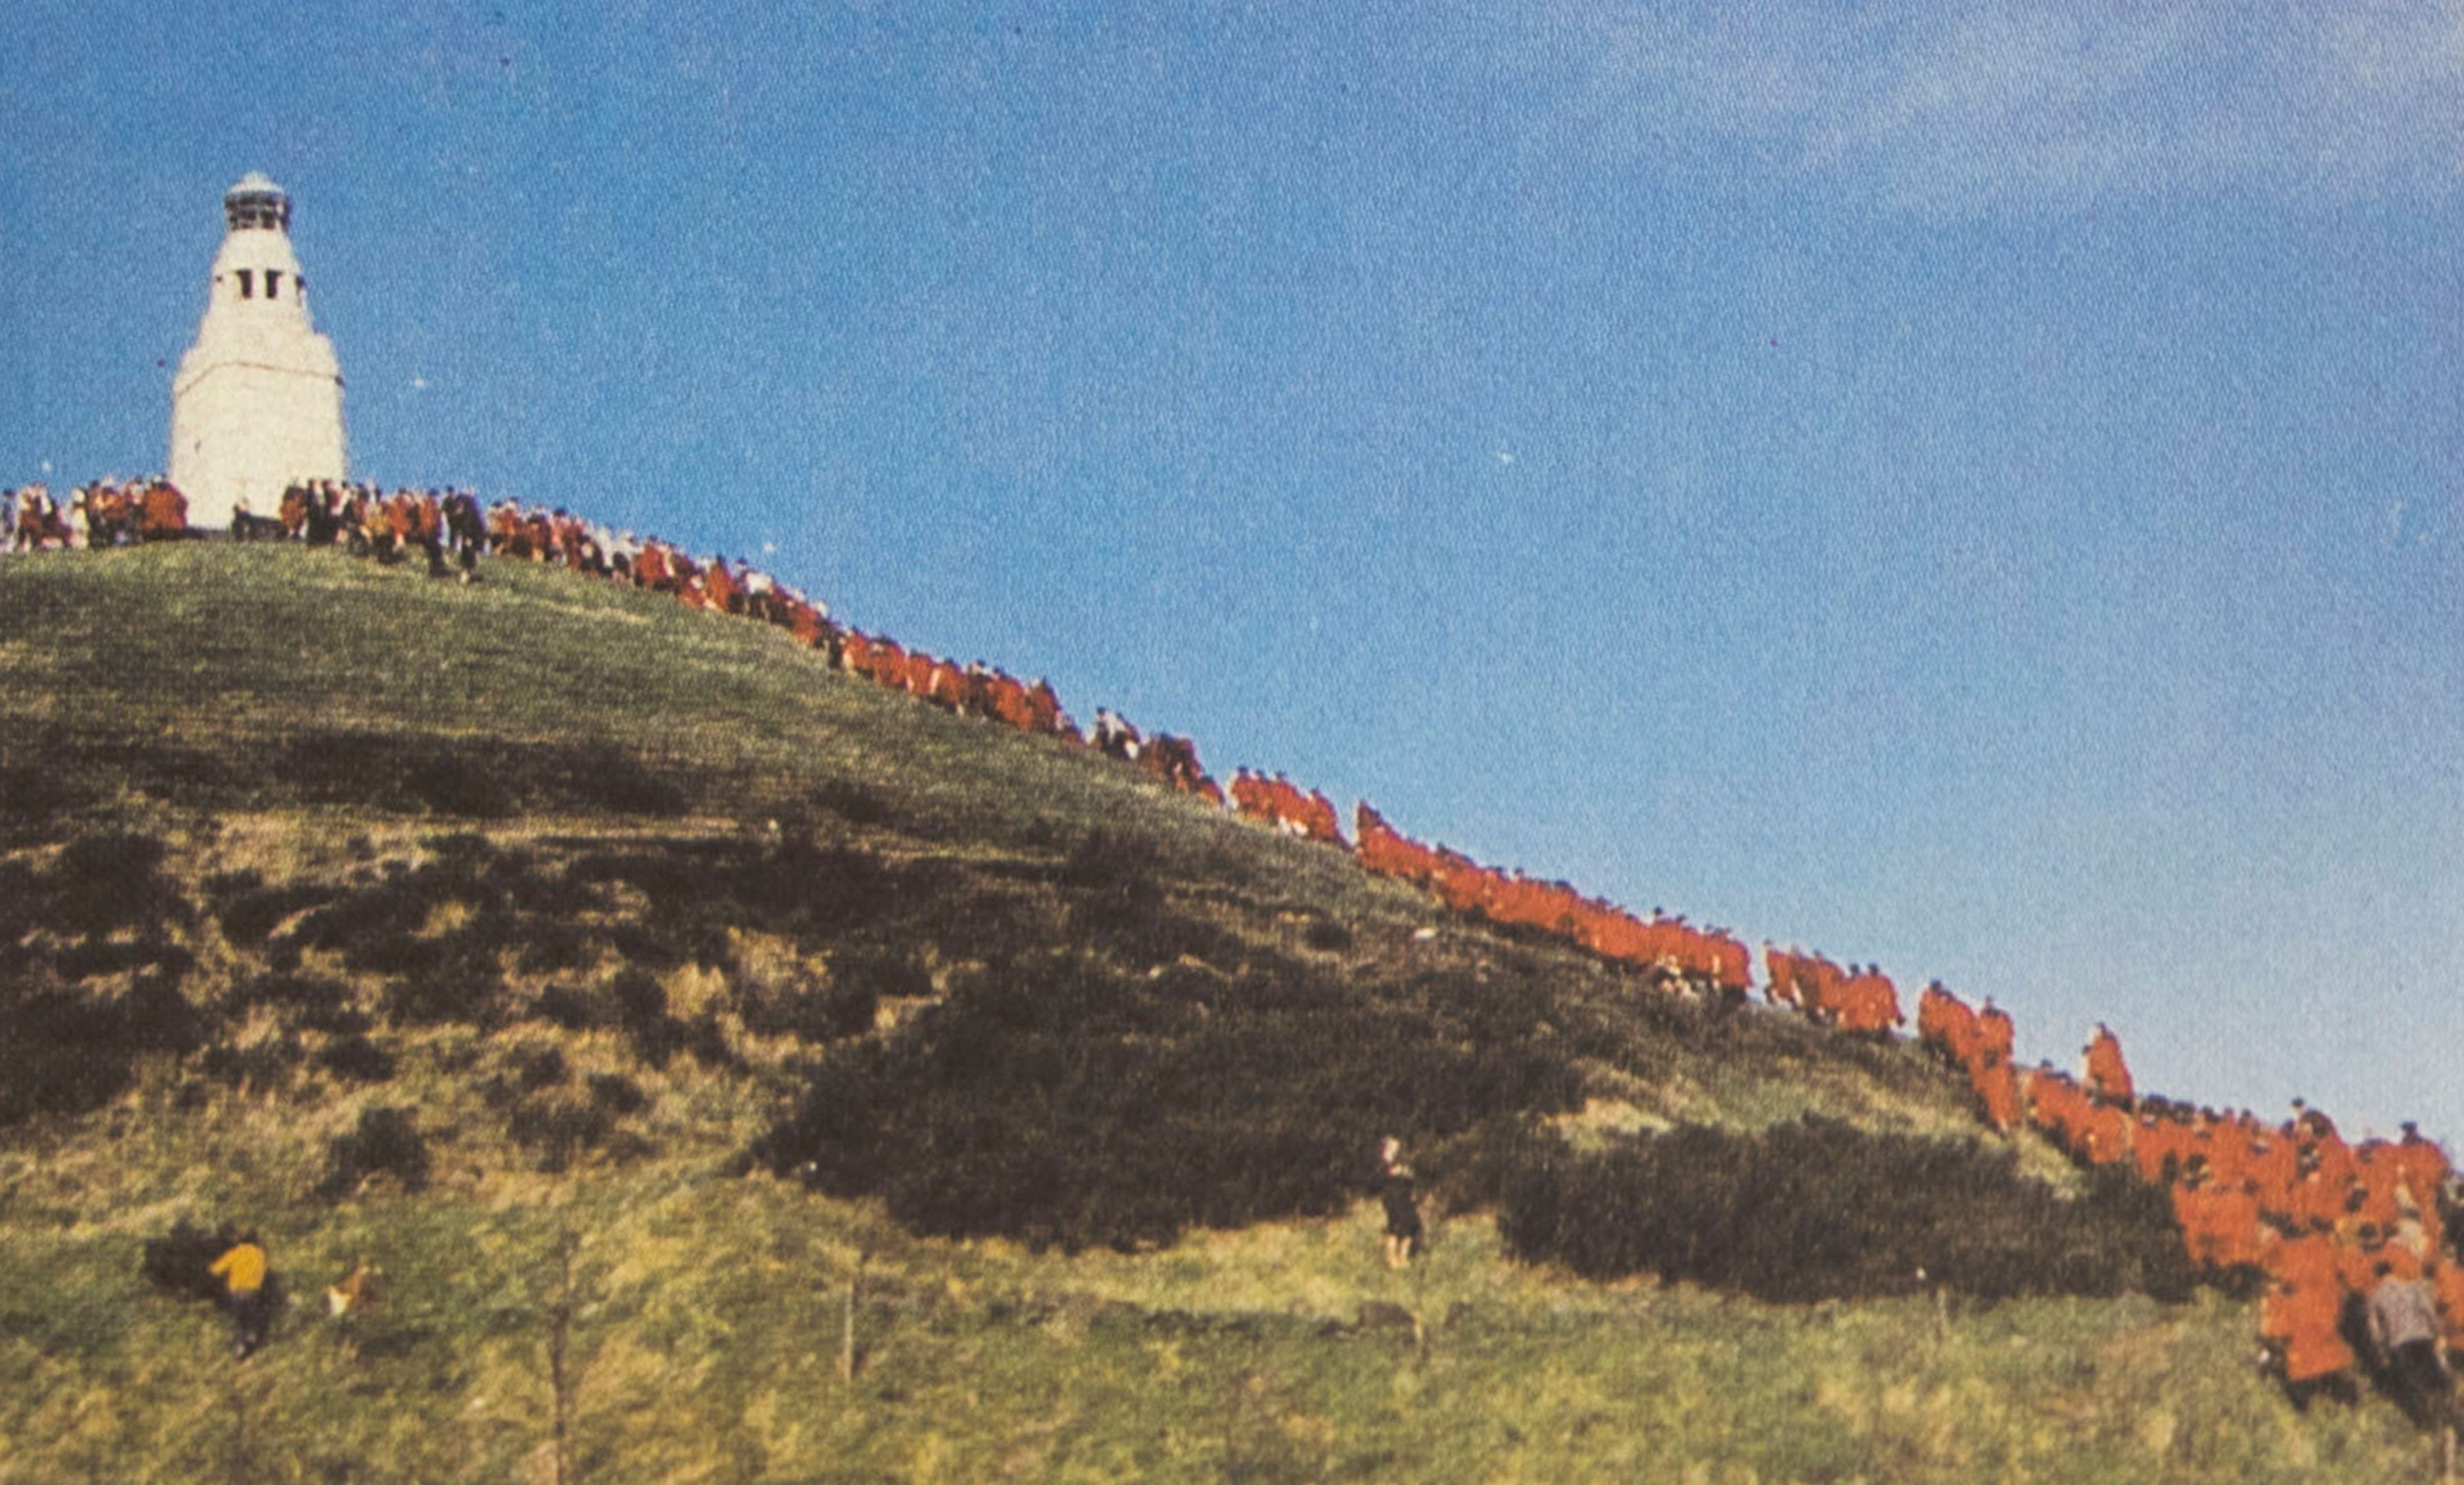 Students wearing red St Andrews gowns march up Dundee Law - and return with them removed to symbolise independence from St Andrews!